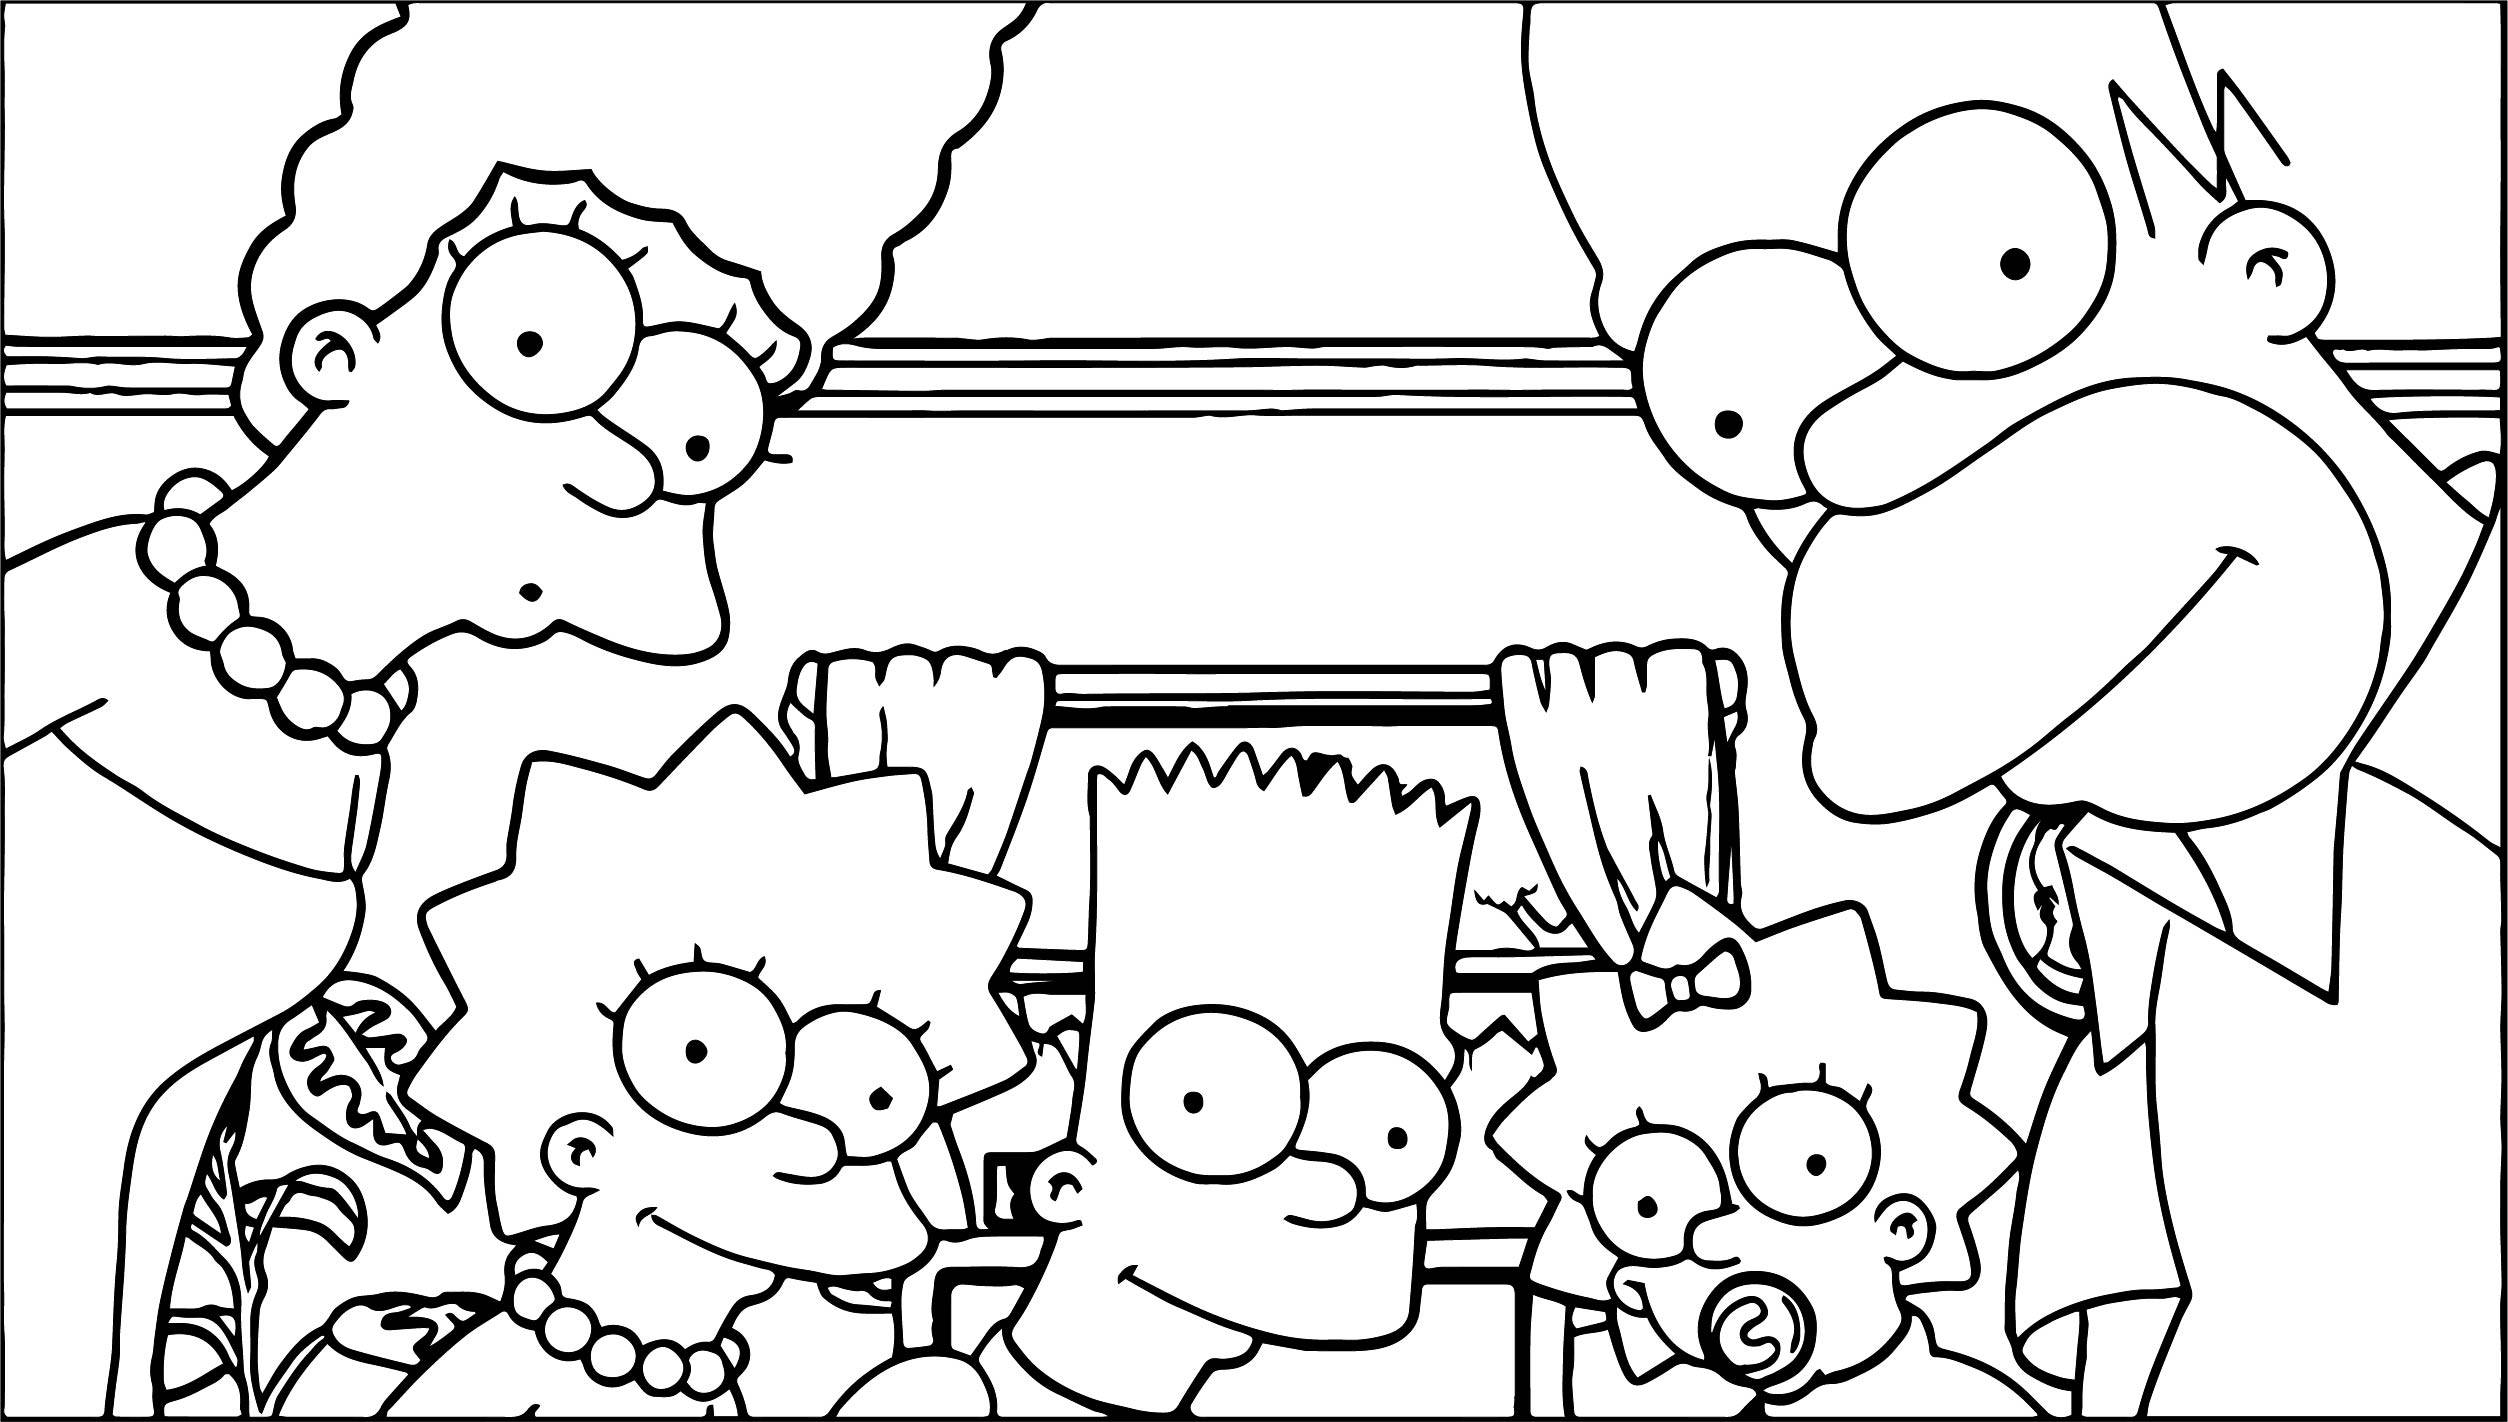 The Simpsons Photo Coloring Page